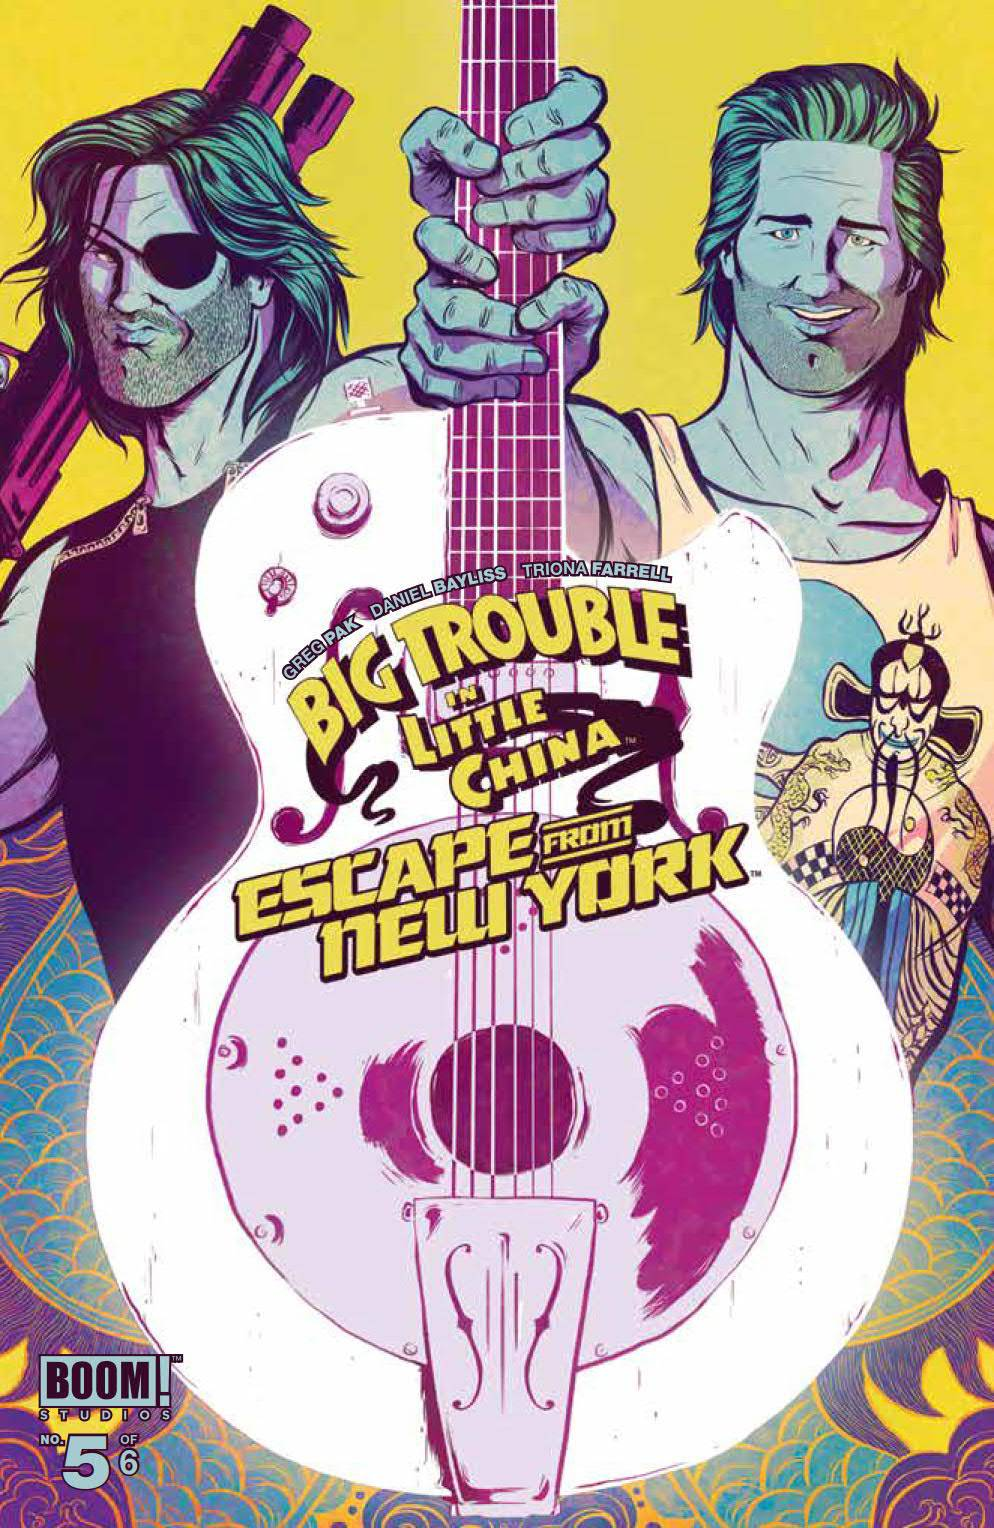 BIG TROUBLE LITTLE CHINA ESCAPE NEW YORK #5 WRAPAROUND BAYLI